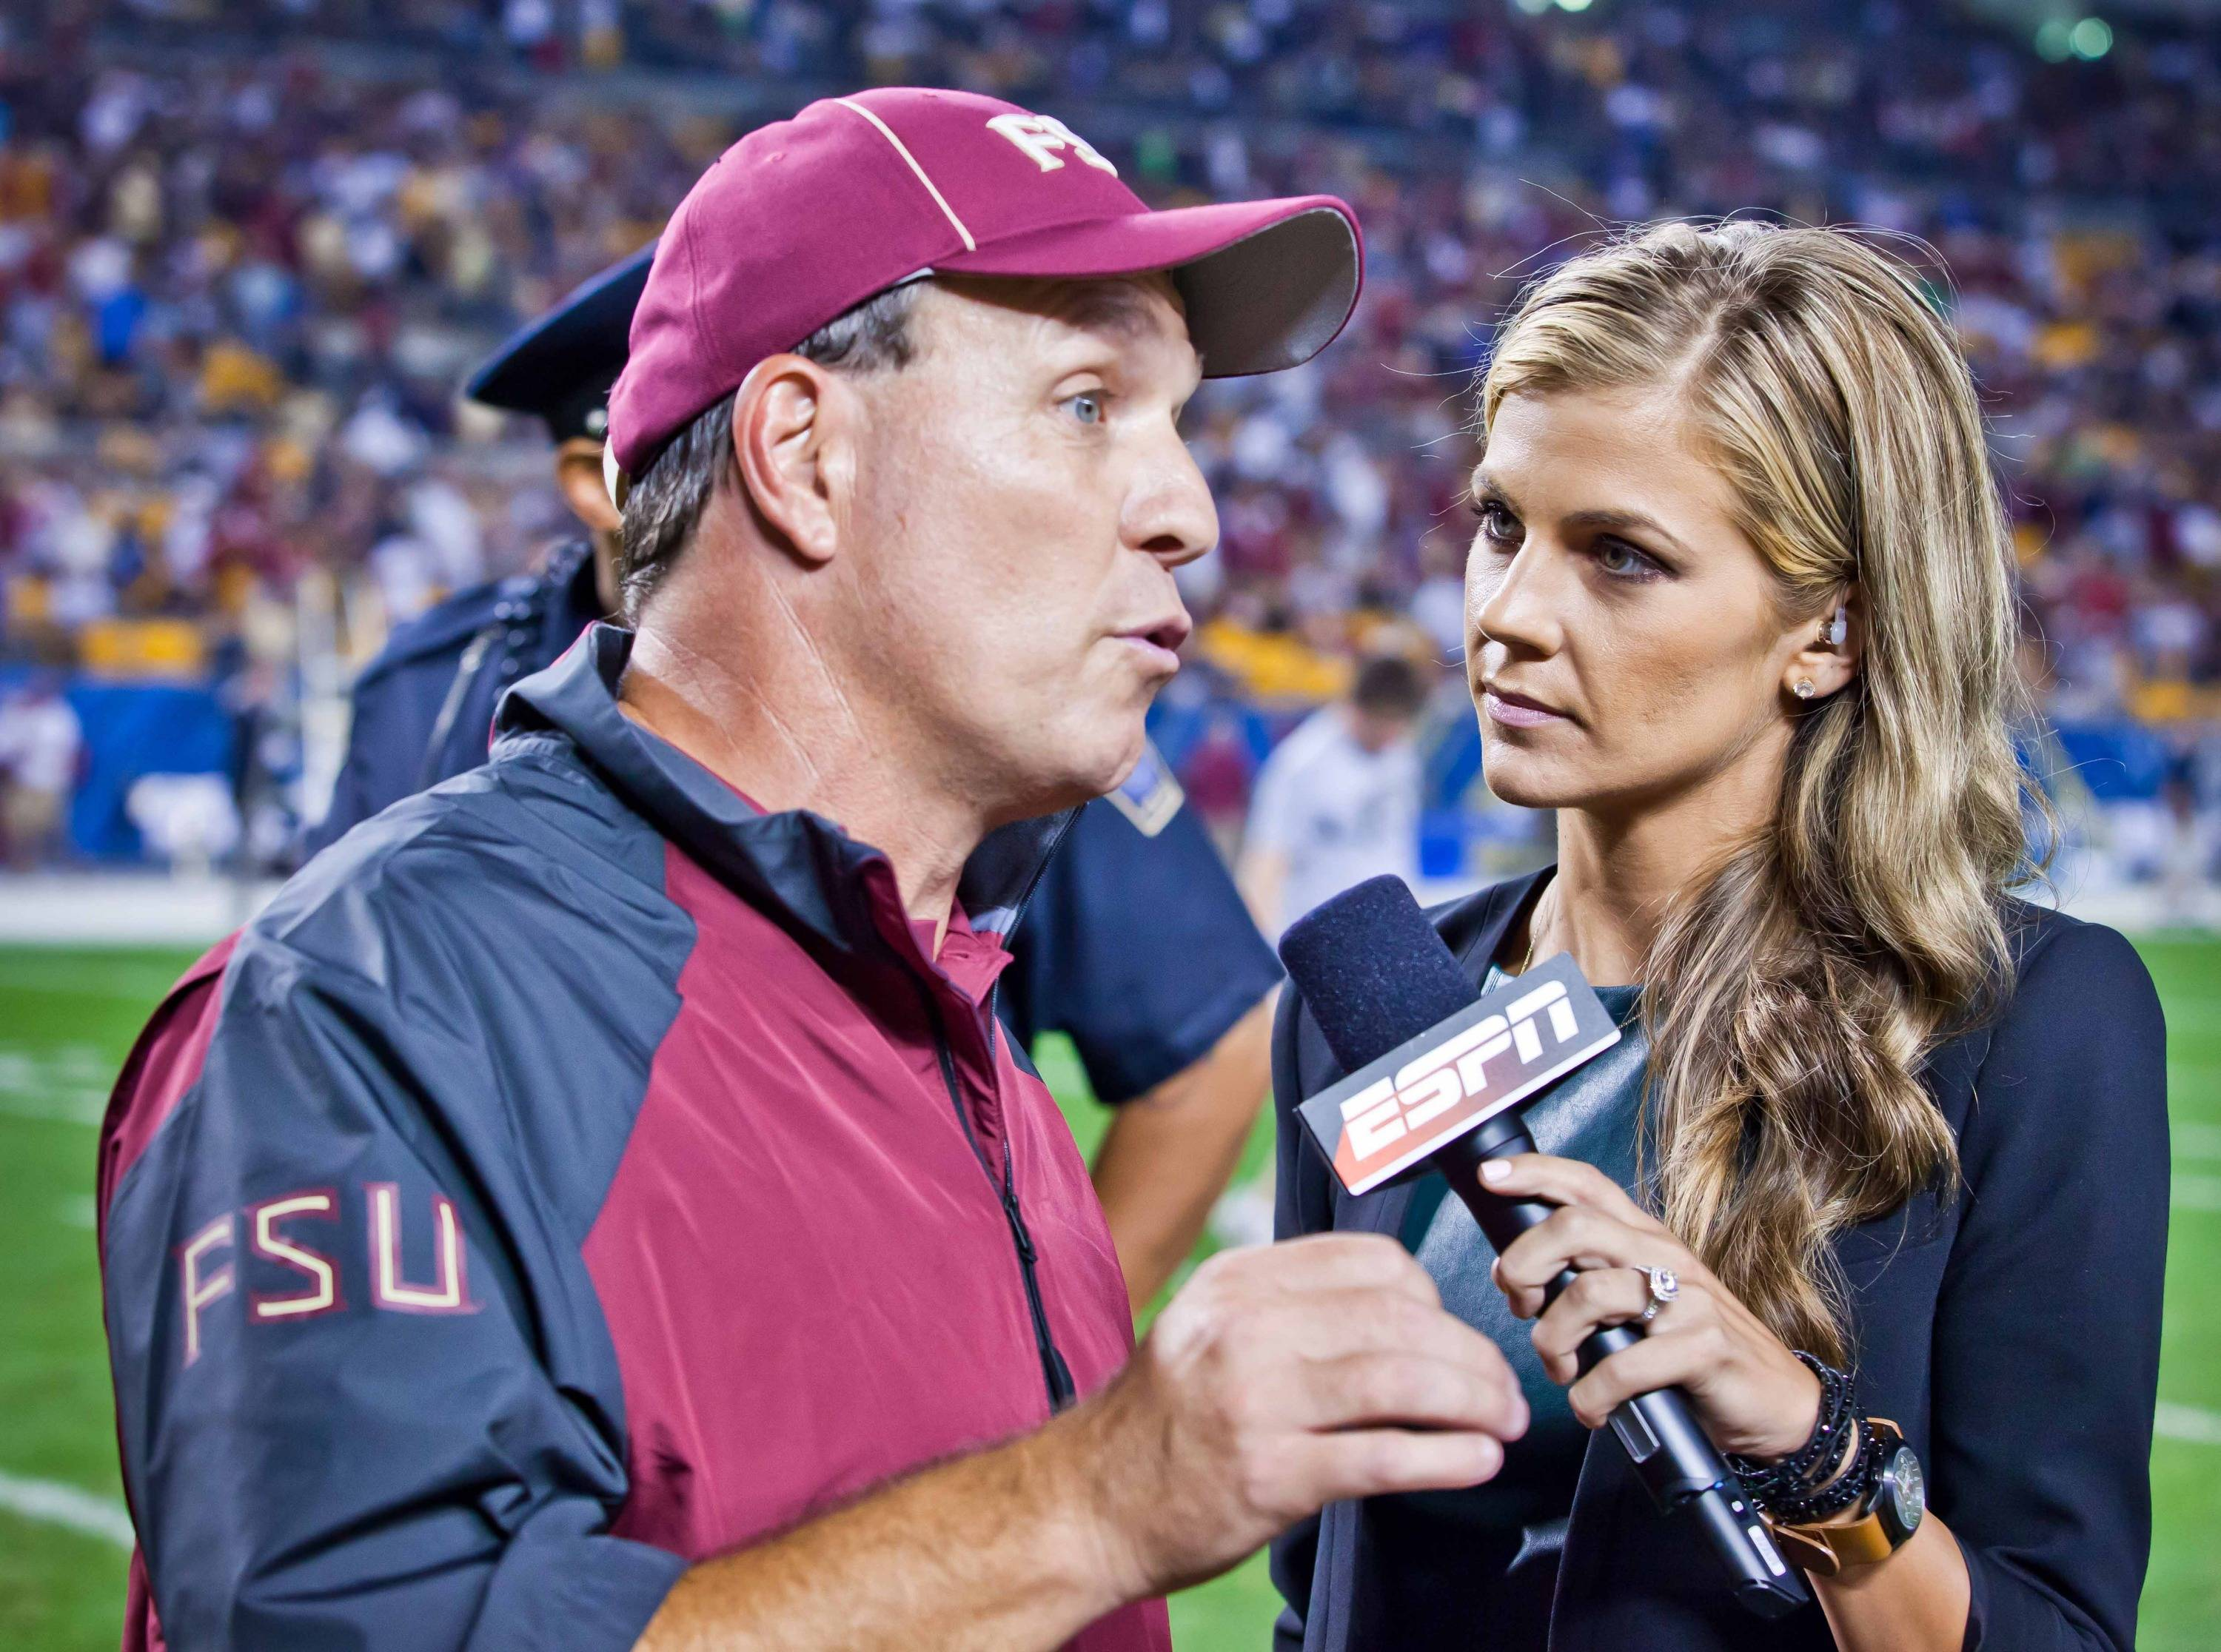 Jimbo Fisher is interviewed by ESPN's Samantha Steele.